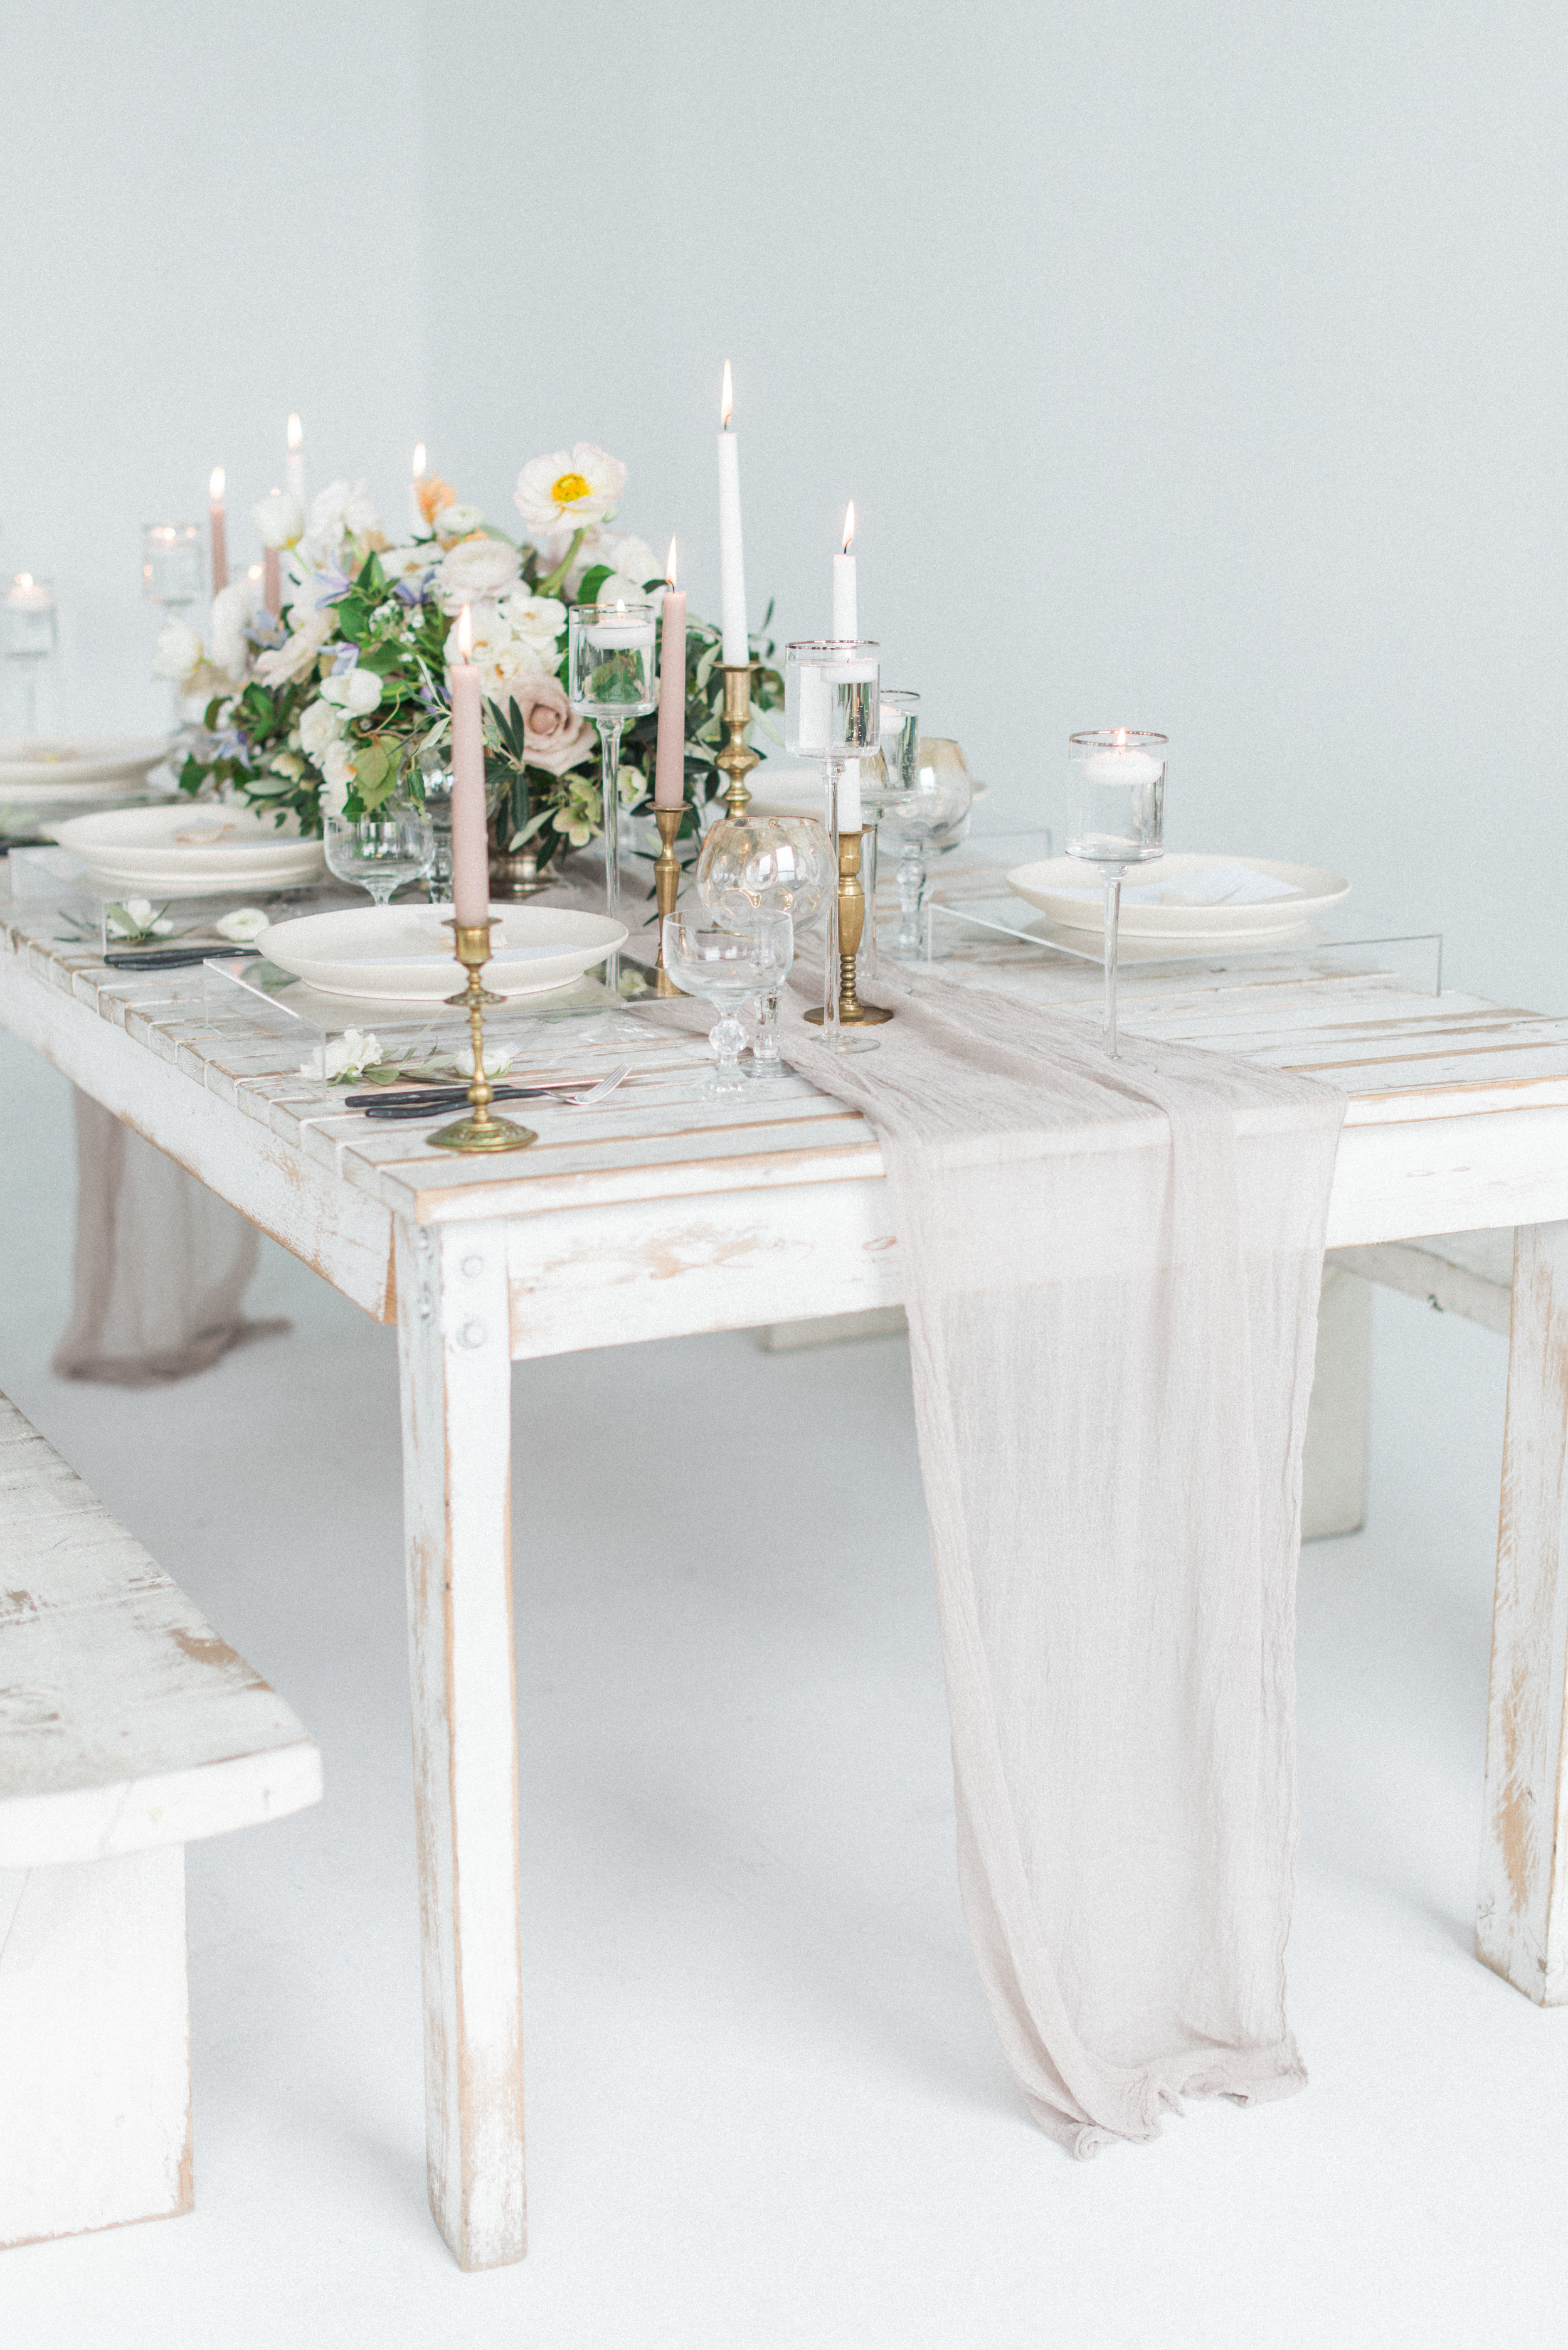 Laura Kelly Photography, Toast Events, Floralia, Lafabere